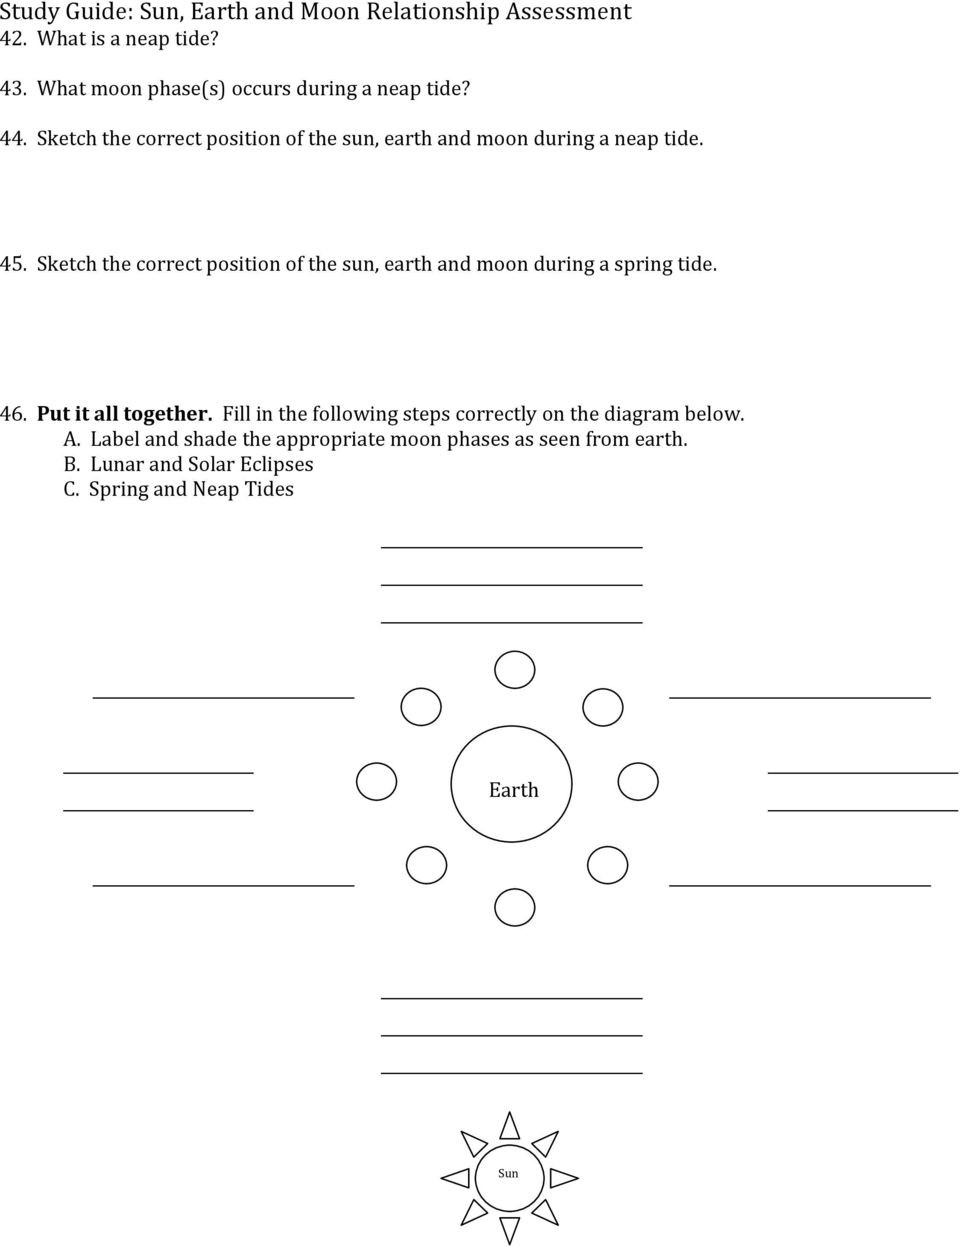 Moon Phases Worksheet Pdf Study Guide Sun Earth and Moon Relationship assessment